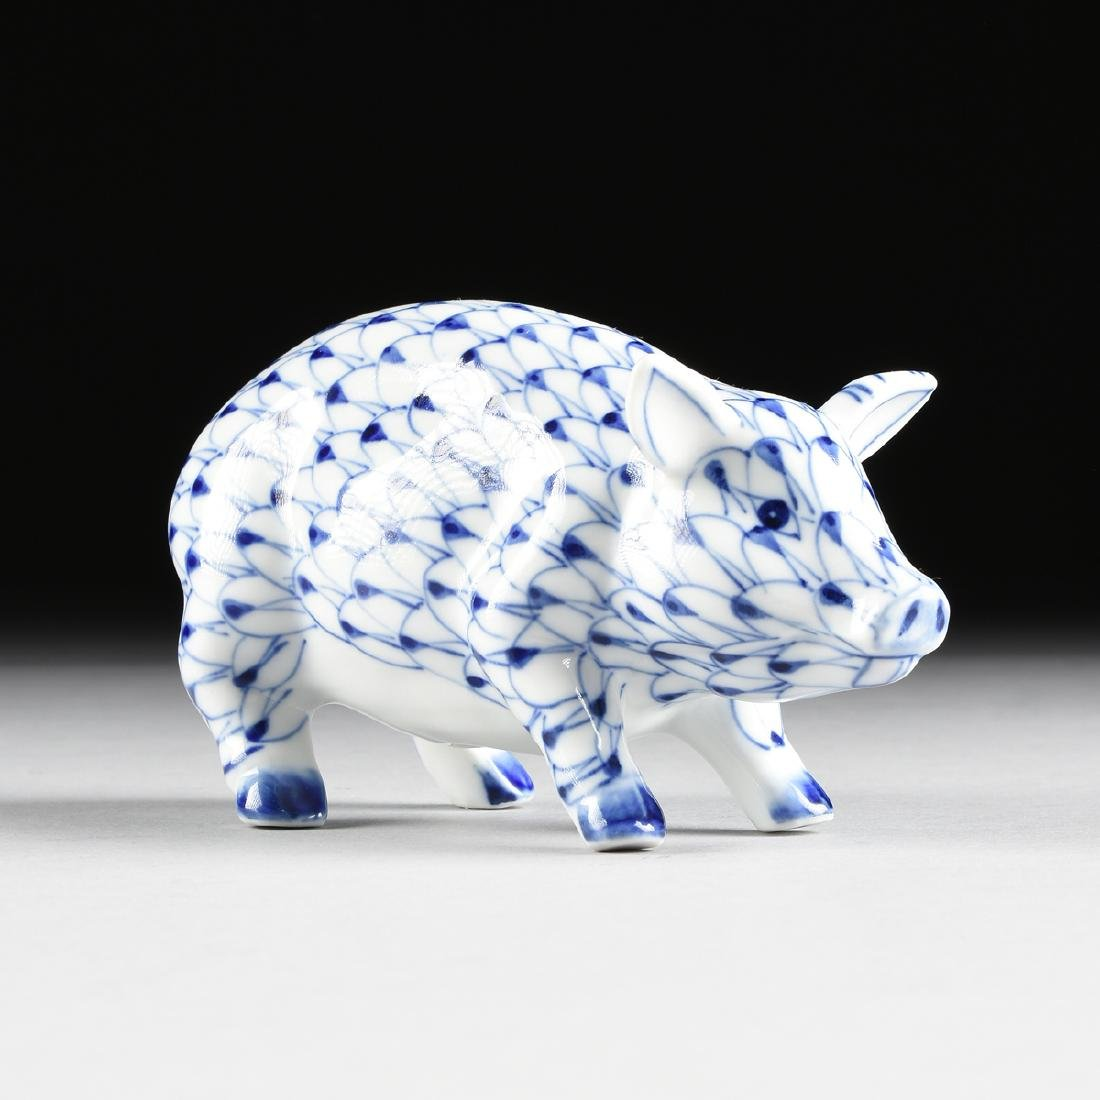 AN ANDREA BY SADEK GLAZED PORCELAIN FIGURE OF A PIG,